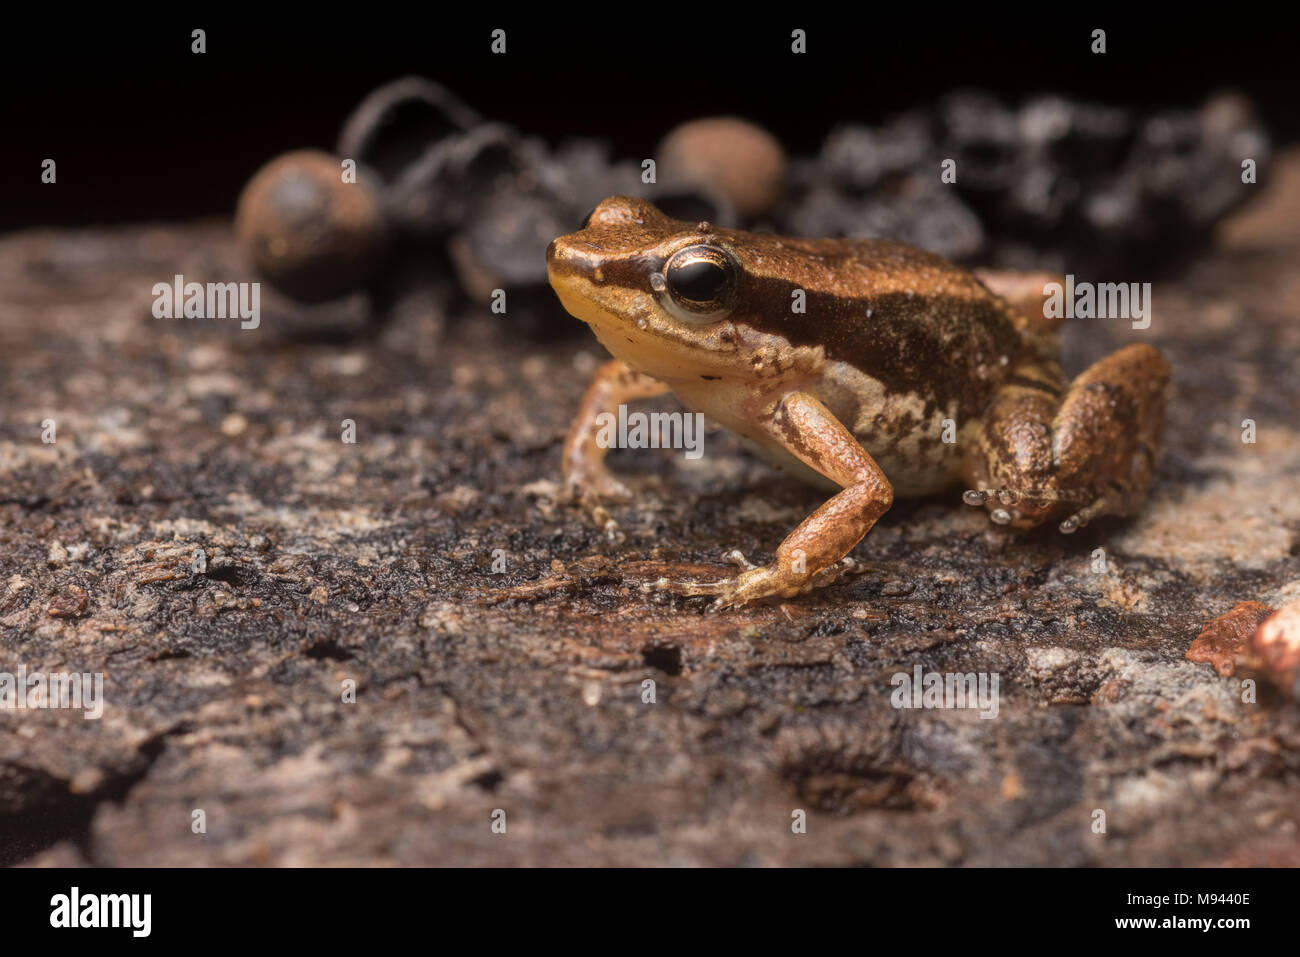 Allobates ornatus, a tiny poison frog only known from the San Martin department in Northern Peru. - Stock Image